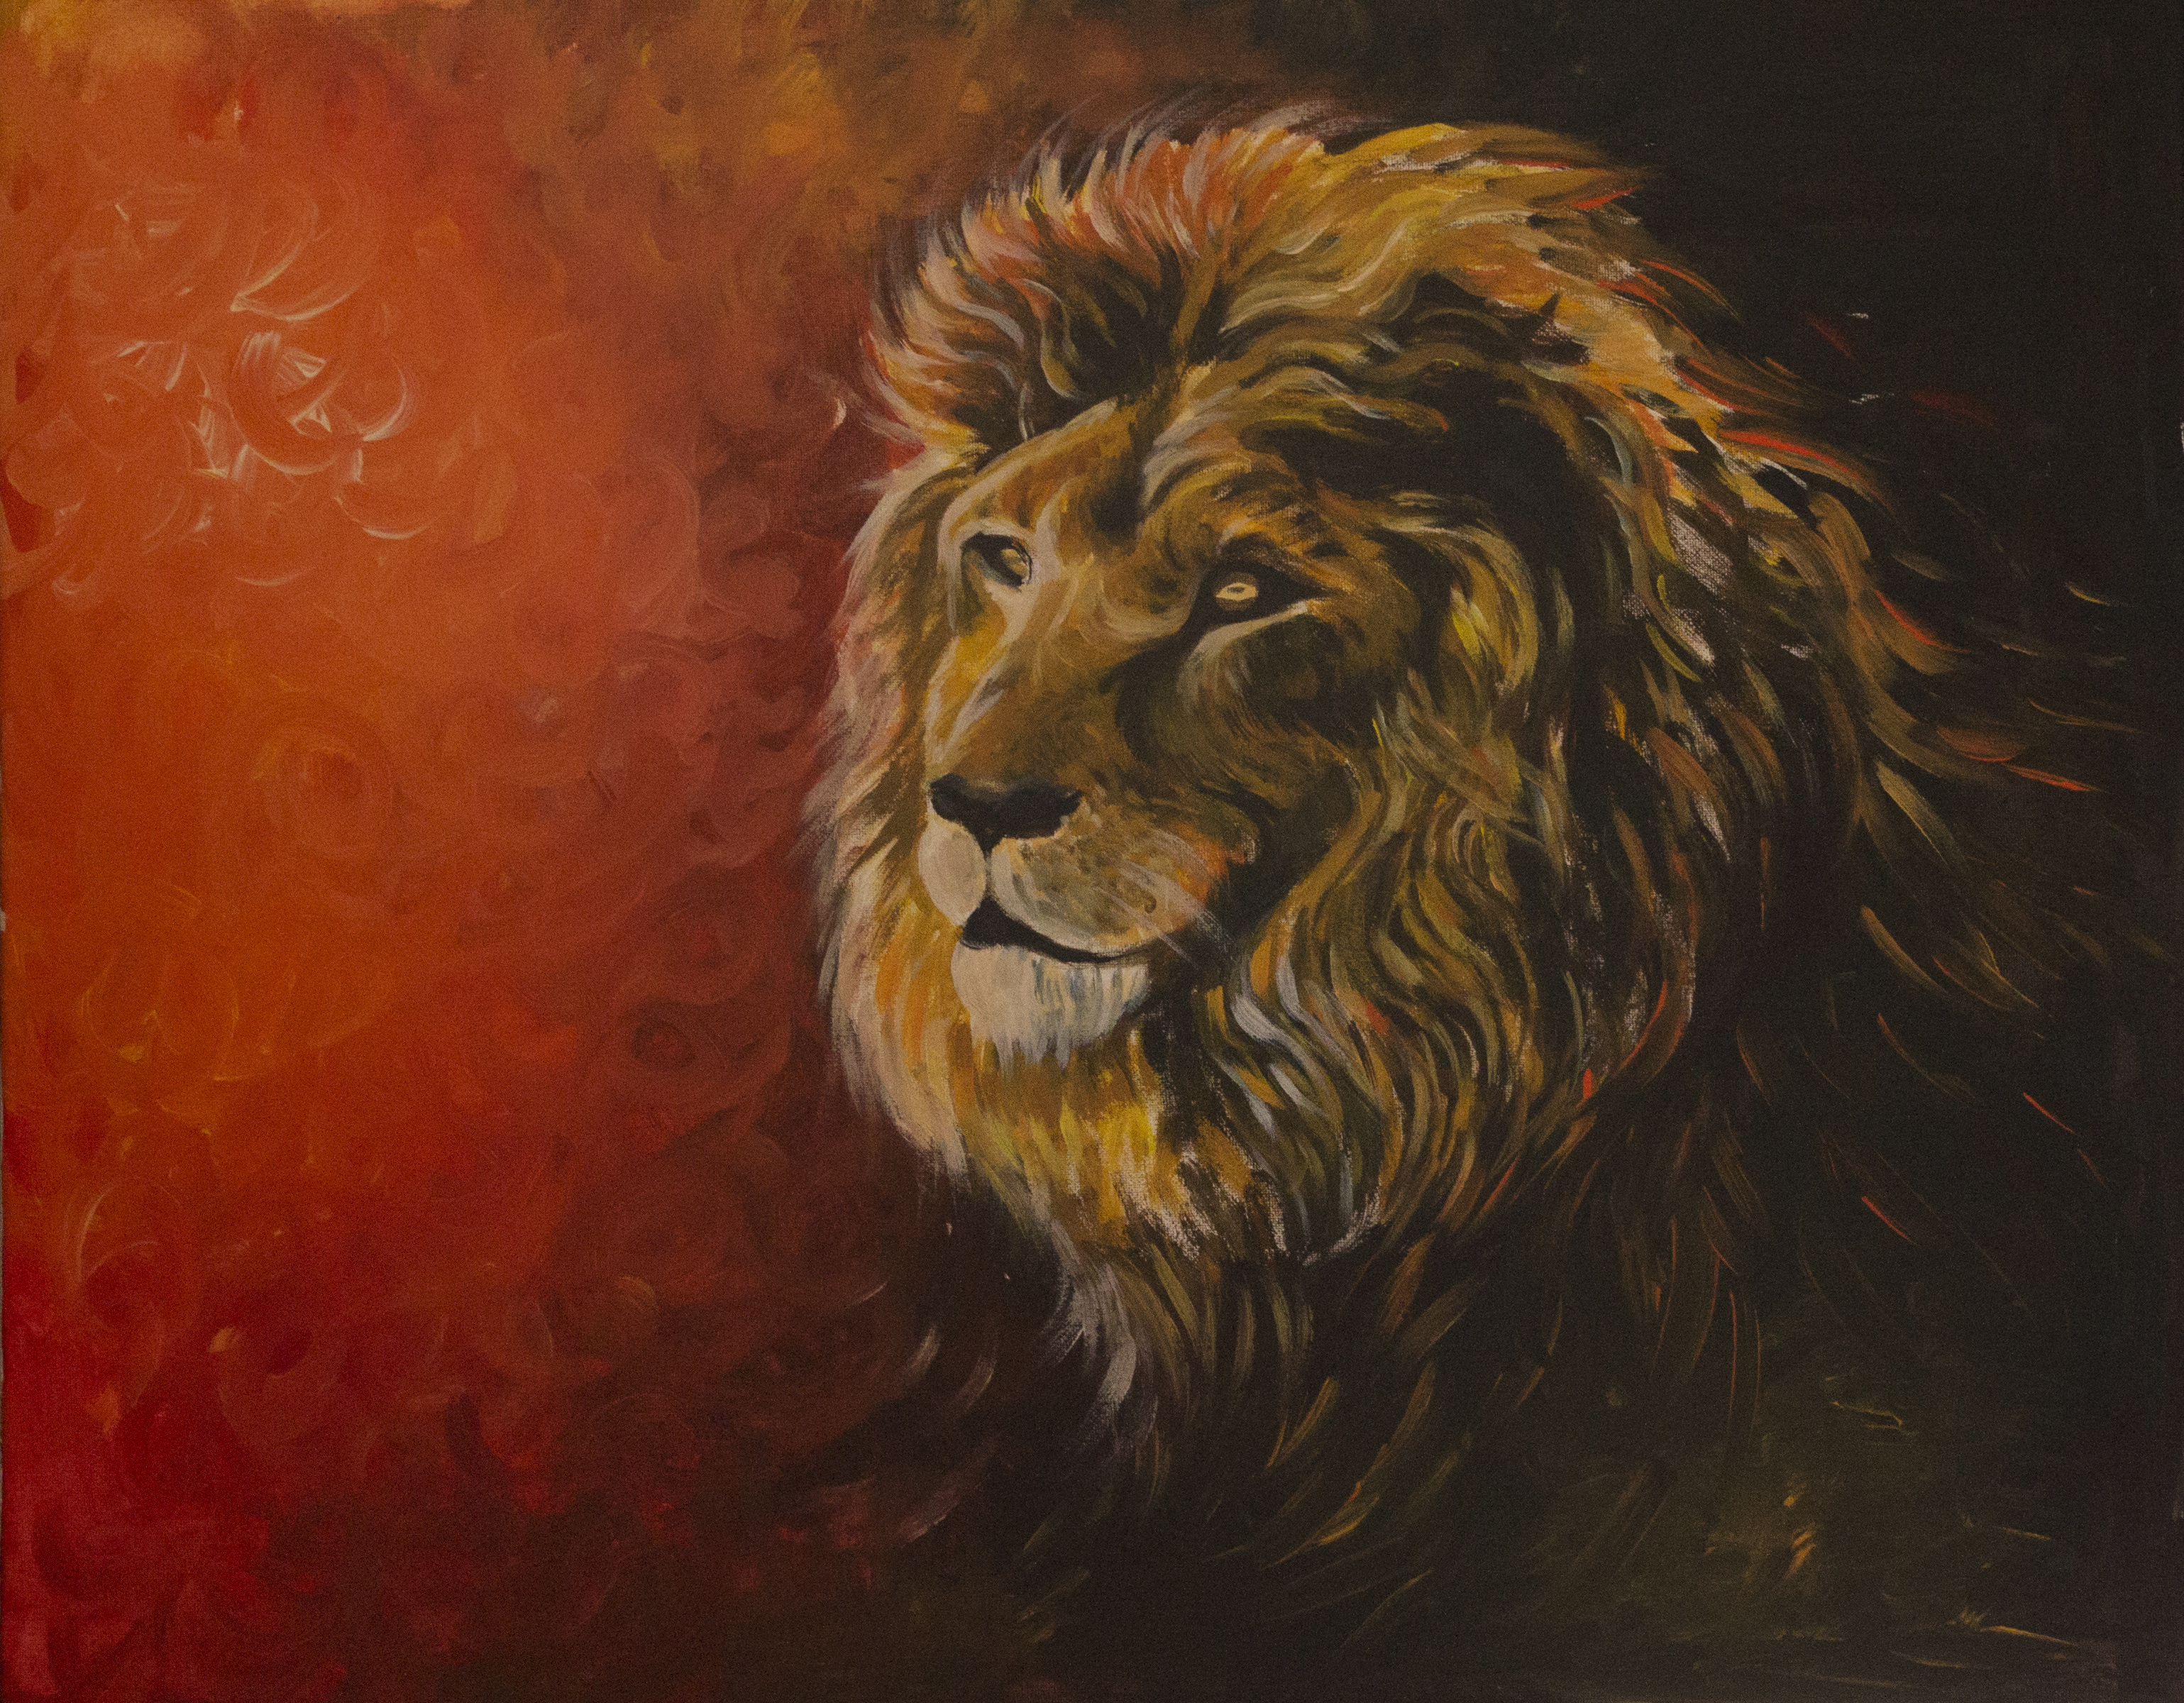 The power of the lion brings forth deep courage and strength in overcoming difficulties.